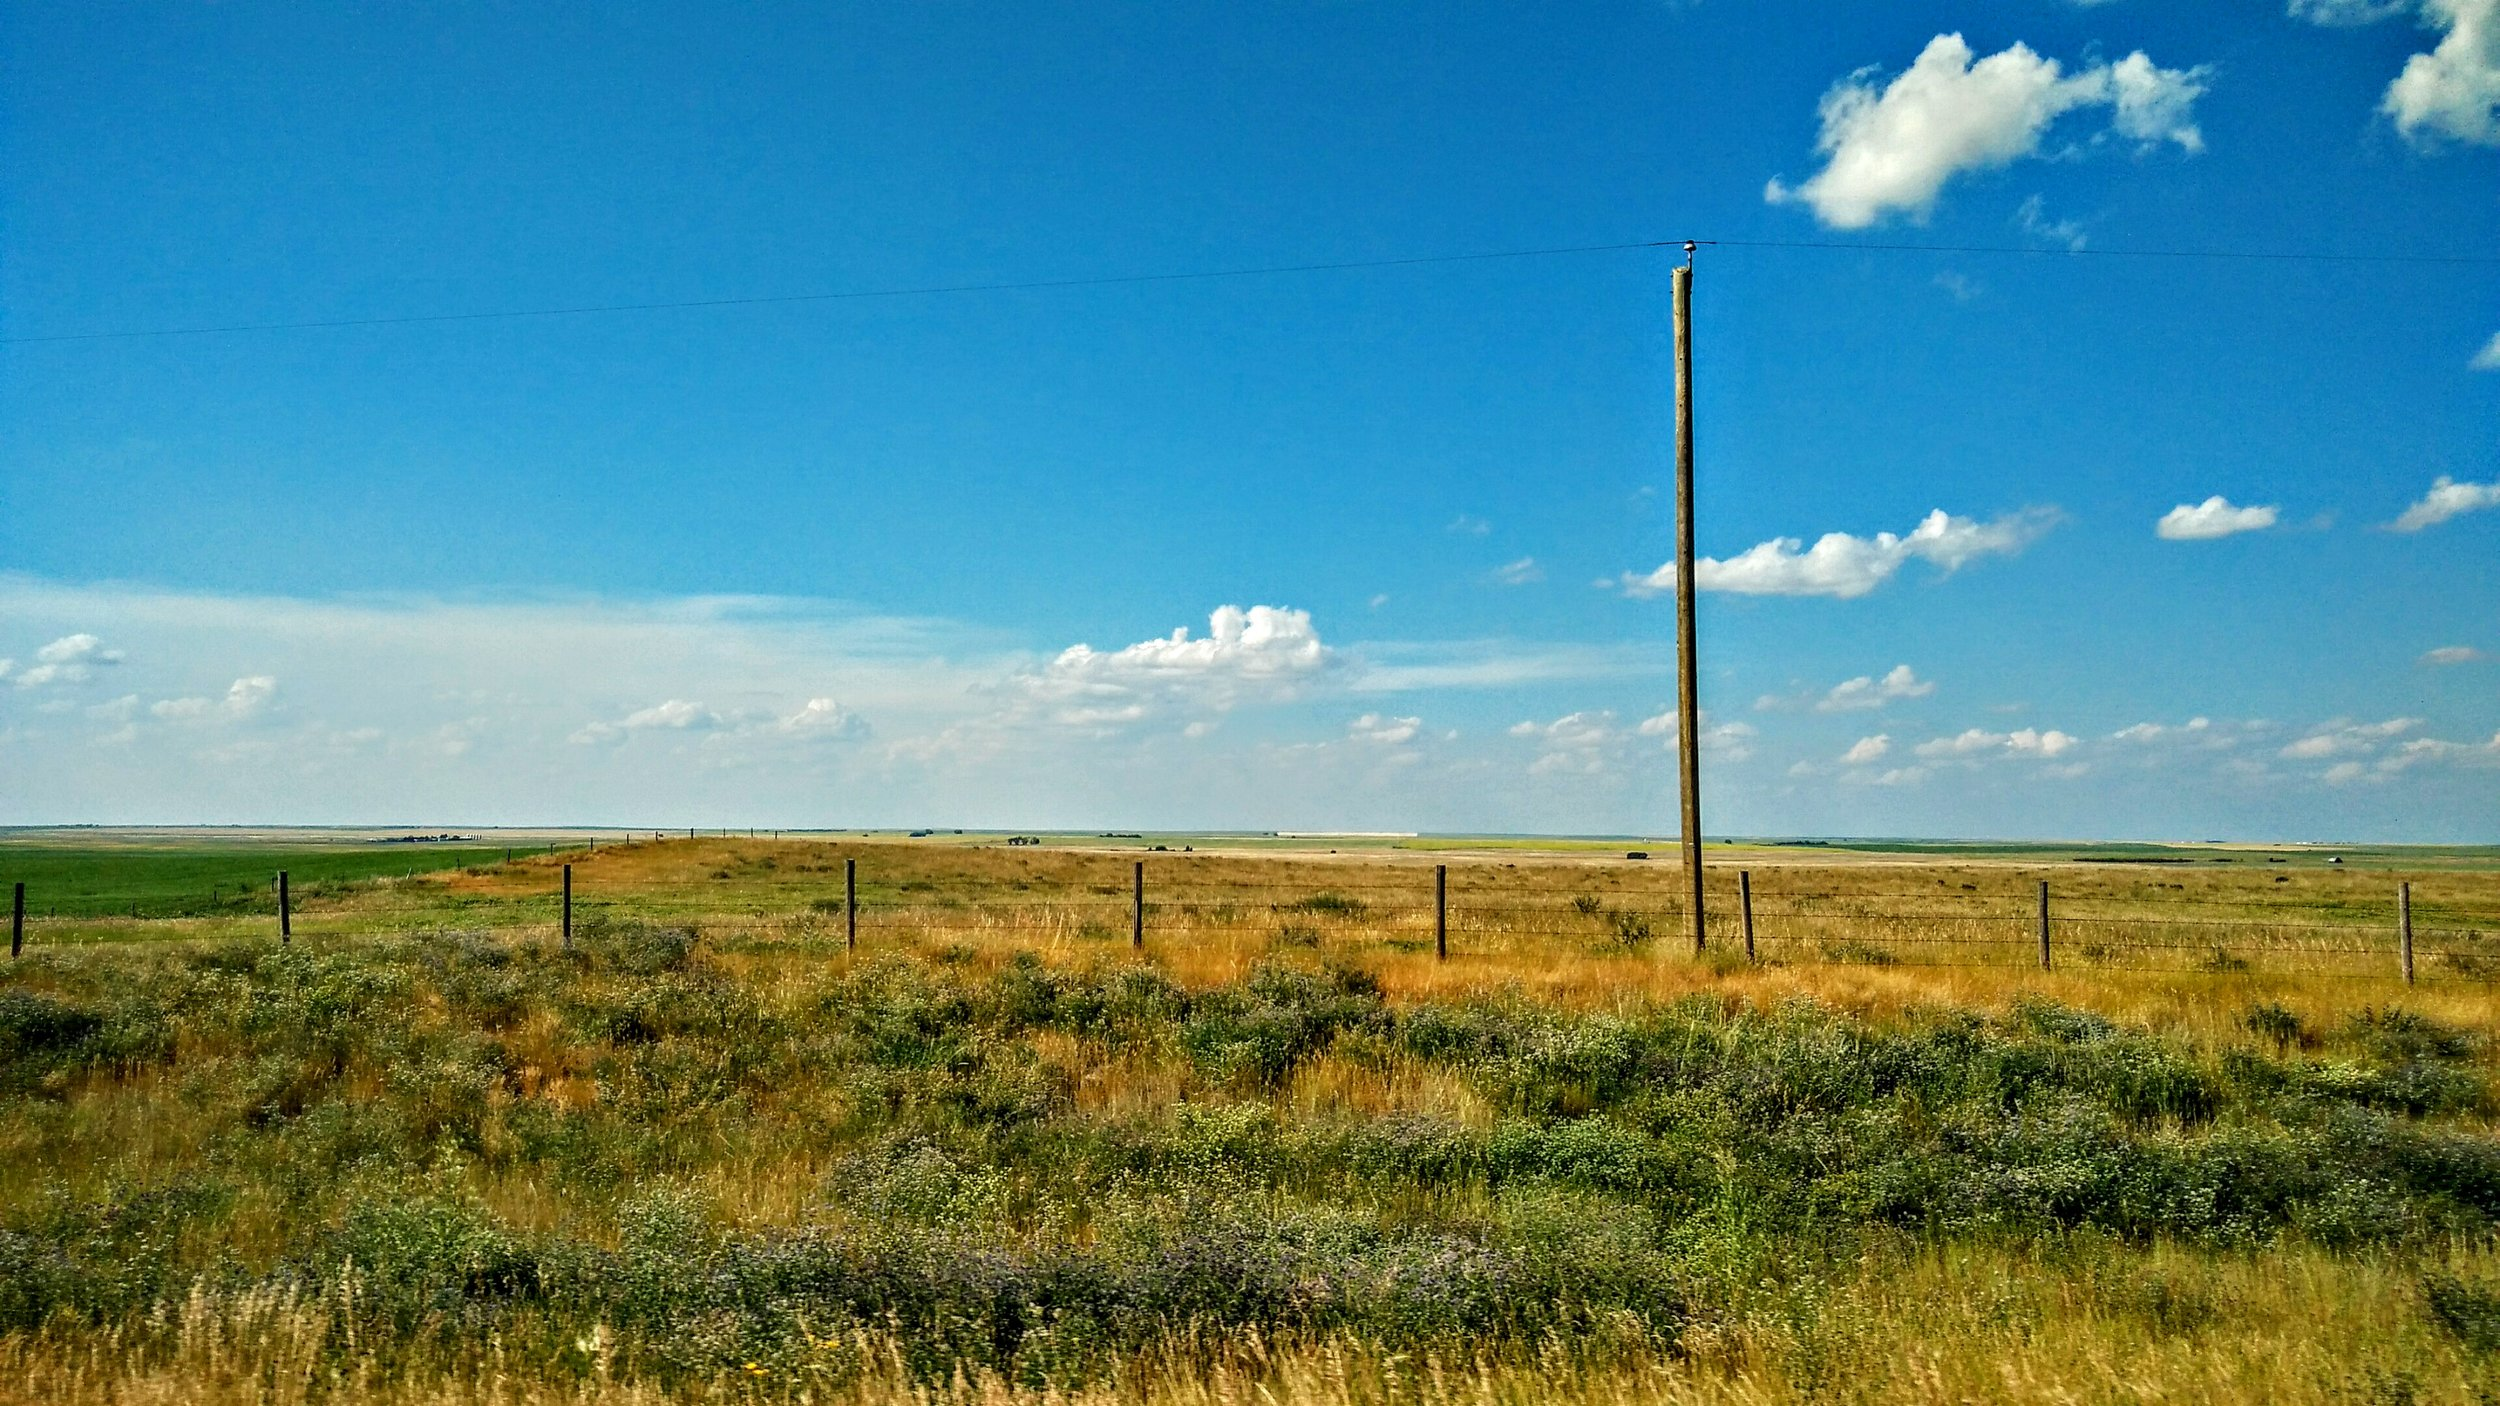 The Canadian Prairies, the place where the living skies change the scenery every moment.